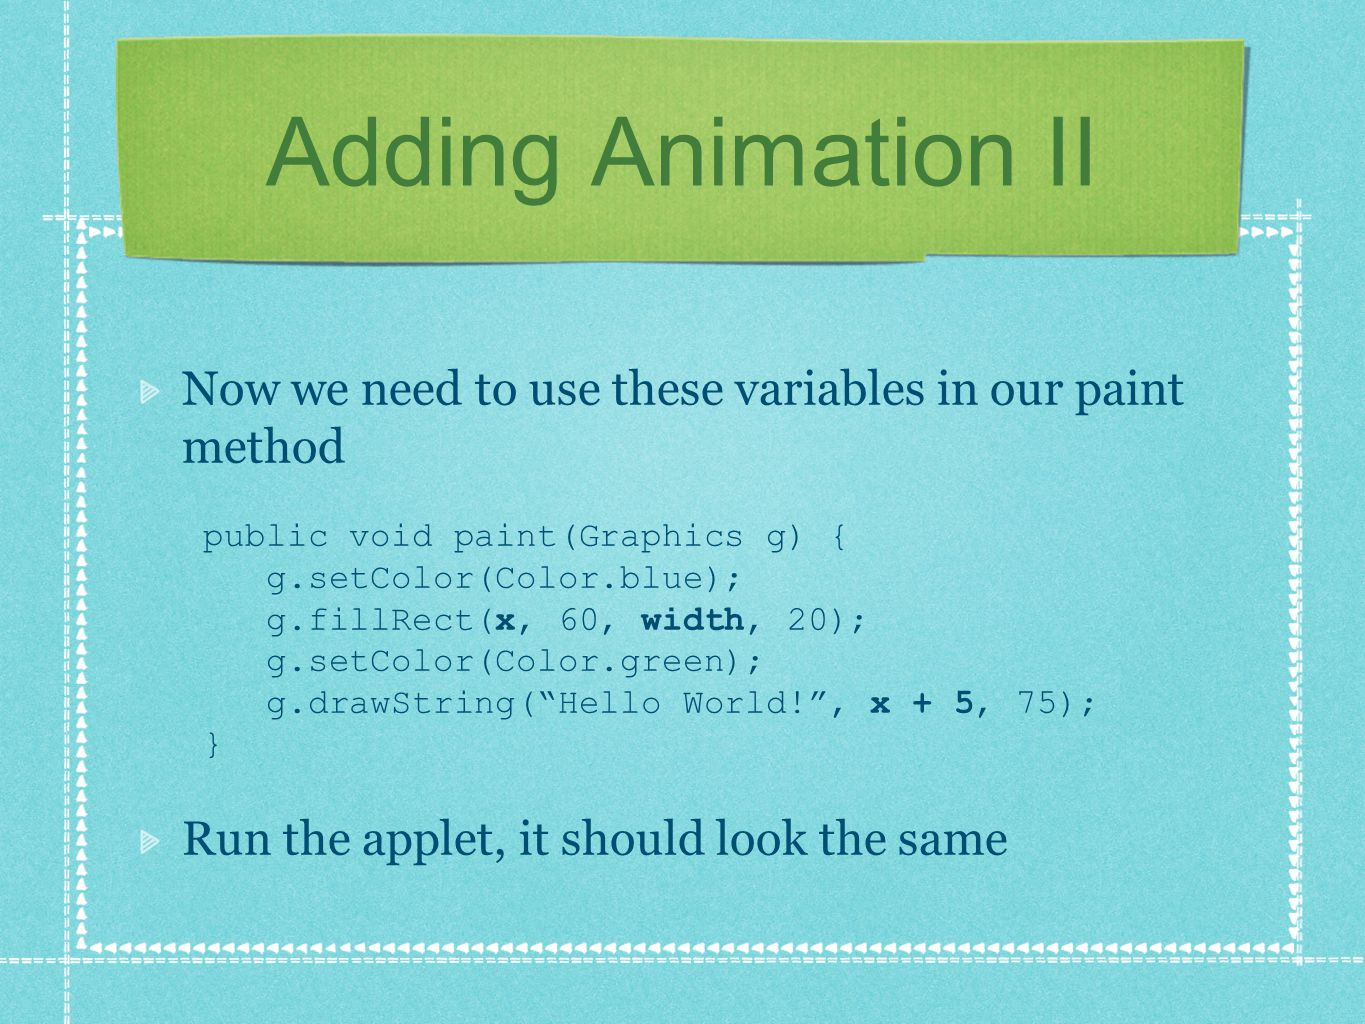 Adding Animation II Now we need to use these variables in our paint method public void paint(Graphics g) { g.setColor(Color.blue); g.fillRect(x, 60, width, 20); g.setColor(Color.green); g.drawString( Hello World! , x + 5, 75); } Run the applet, it should look the same